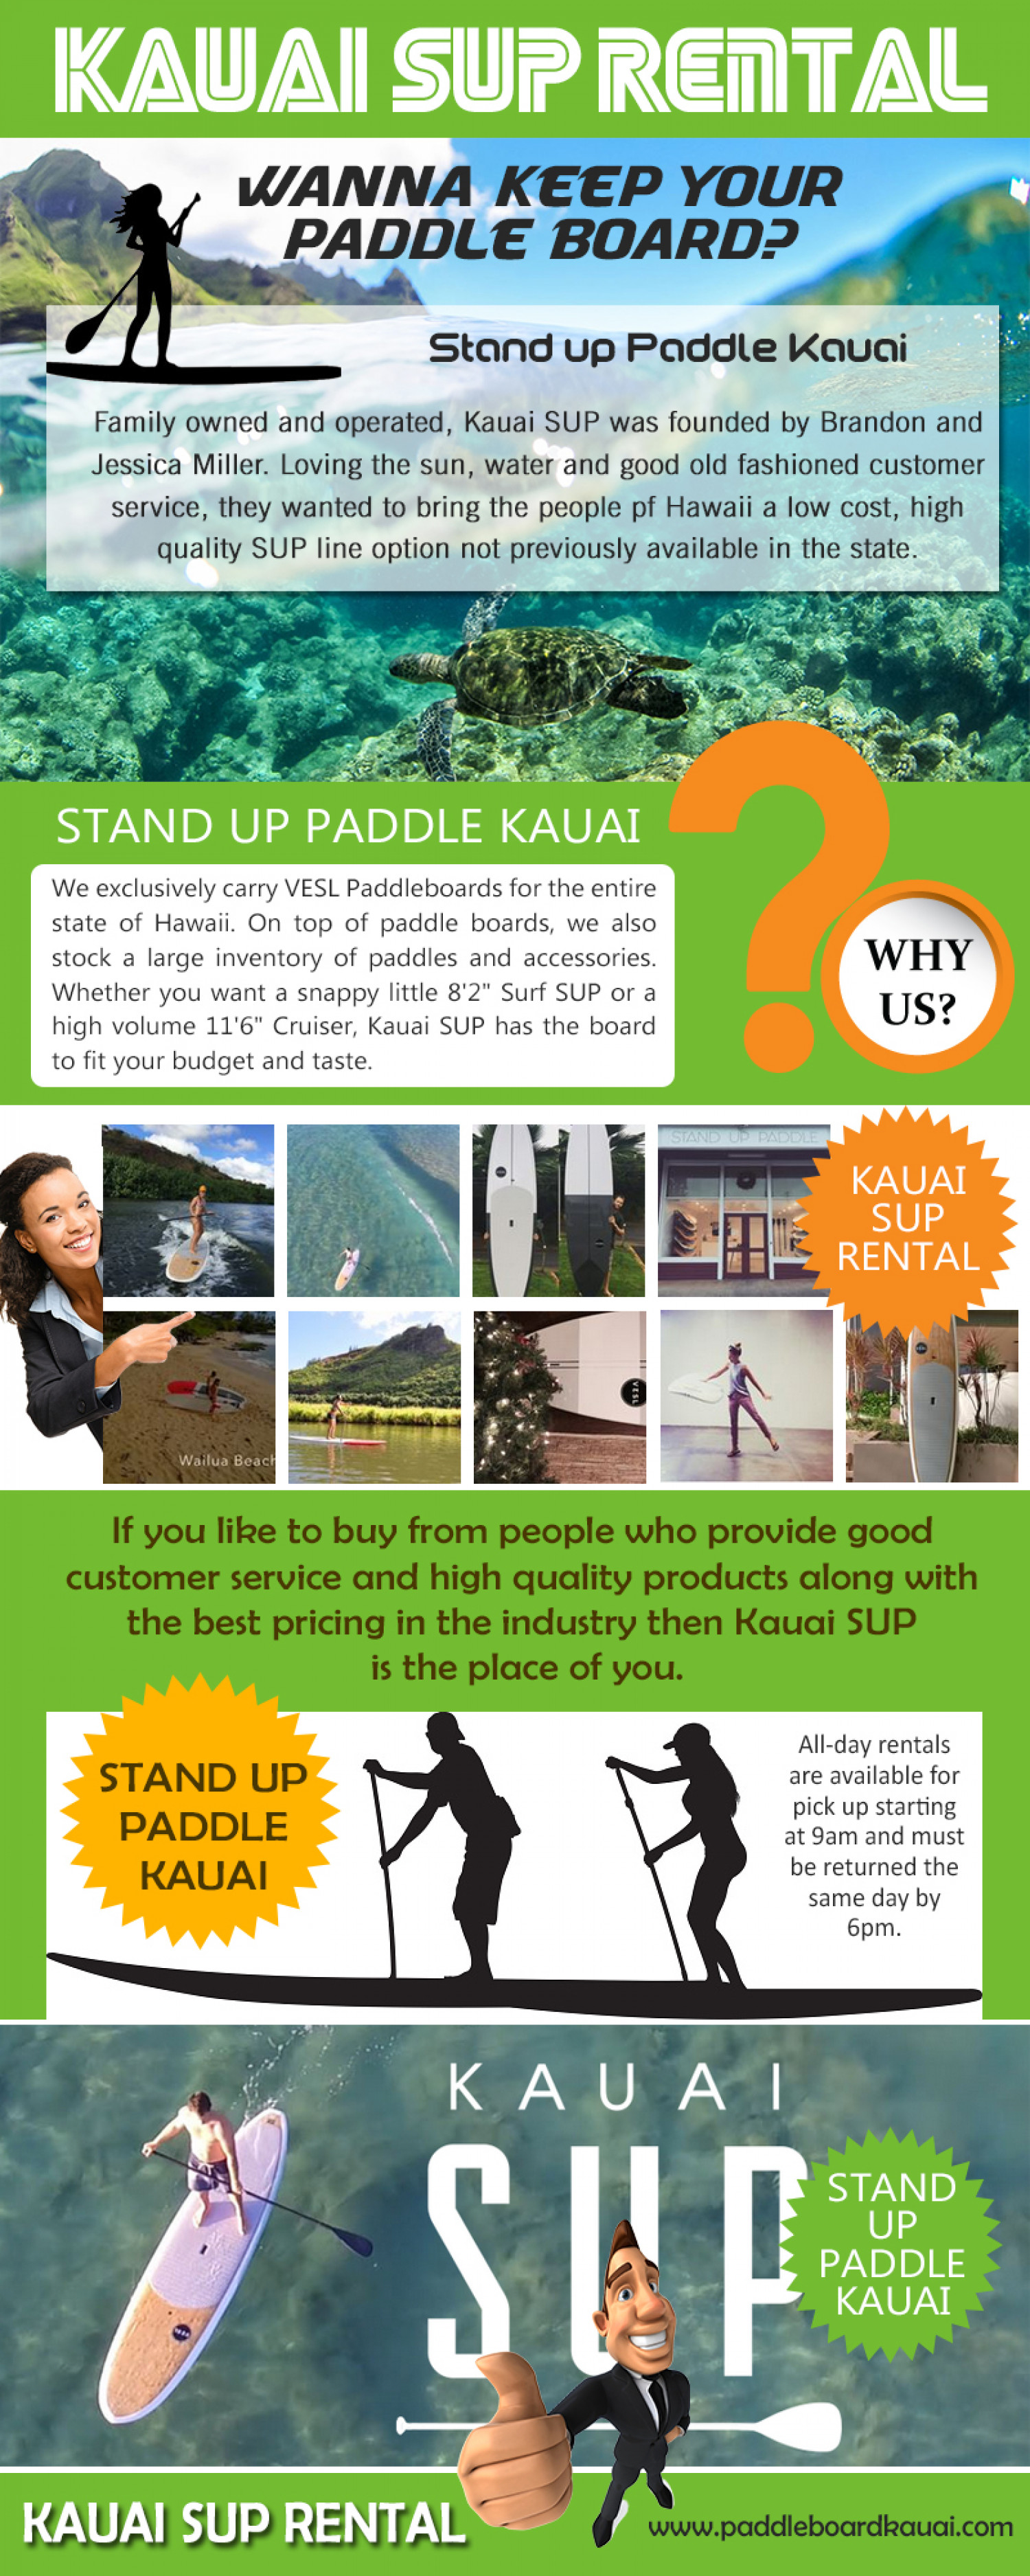 Kauai Paddle Boarding Infographic